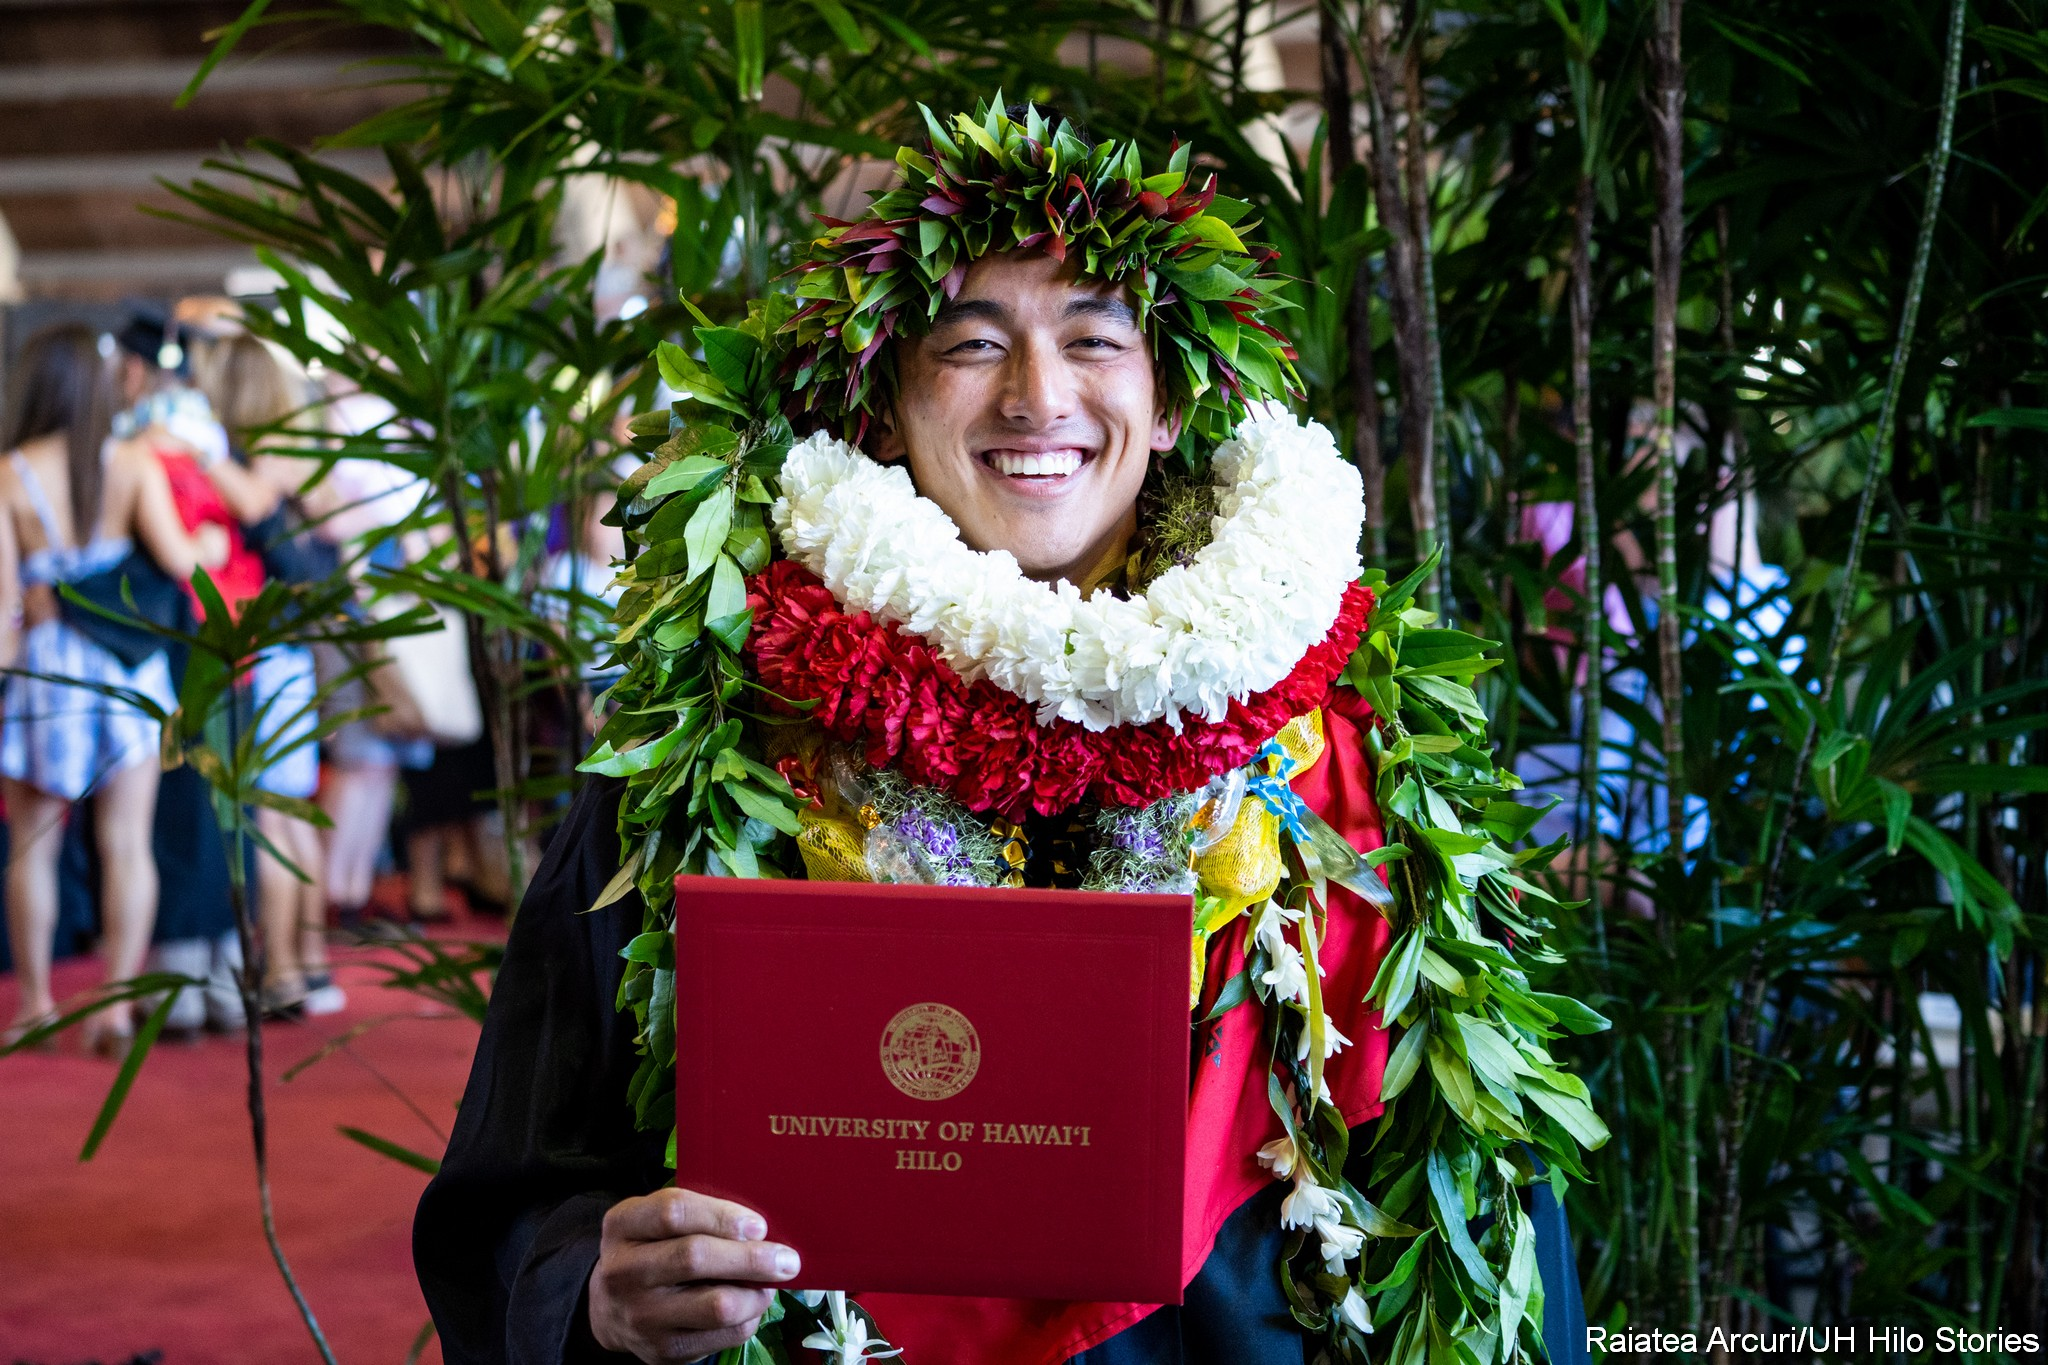 After ceremonies, graduate stands decked with lei and holding diploma.